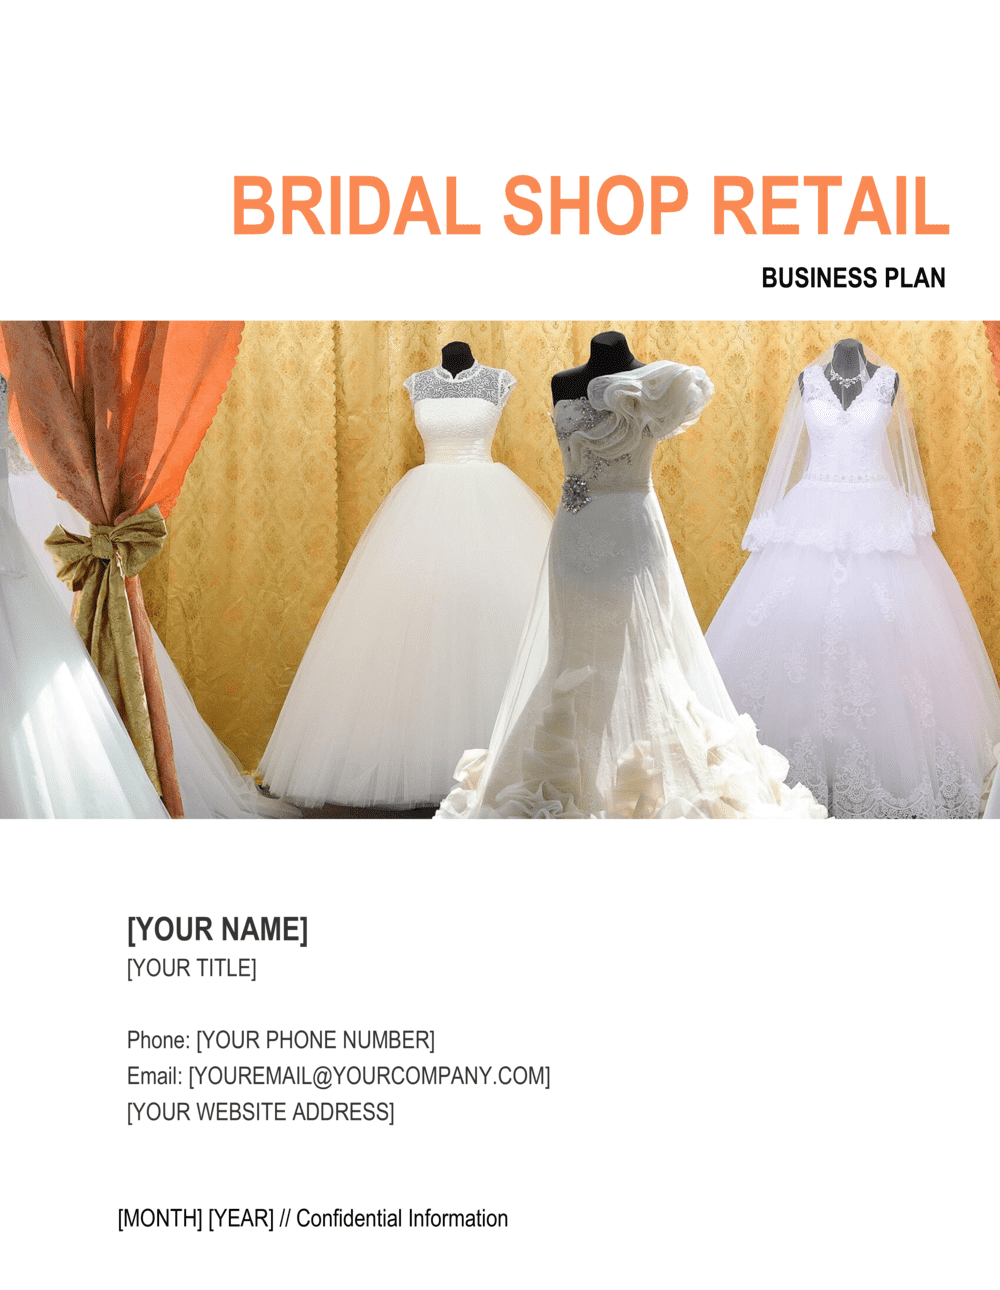 Business-in-a-Box's Bridal Shop Retail Plan Template